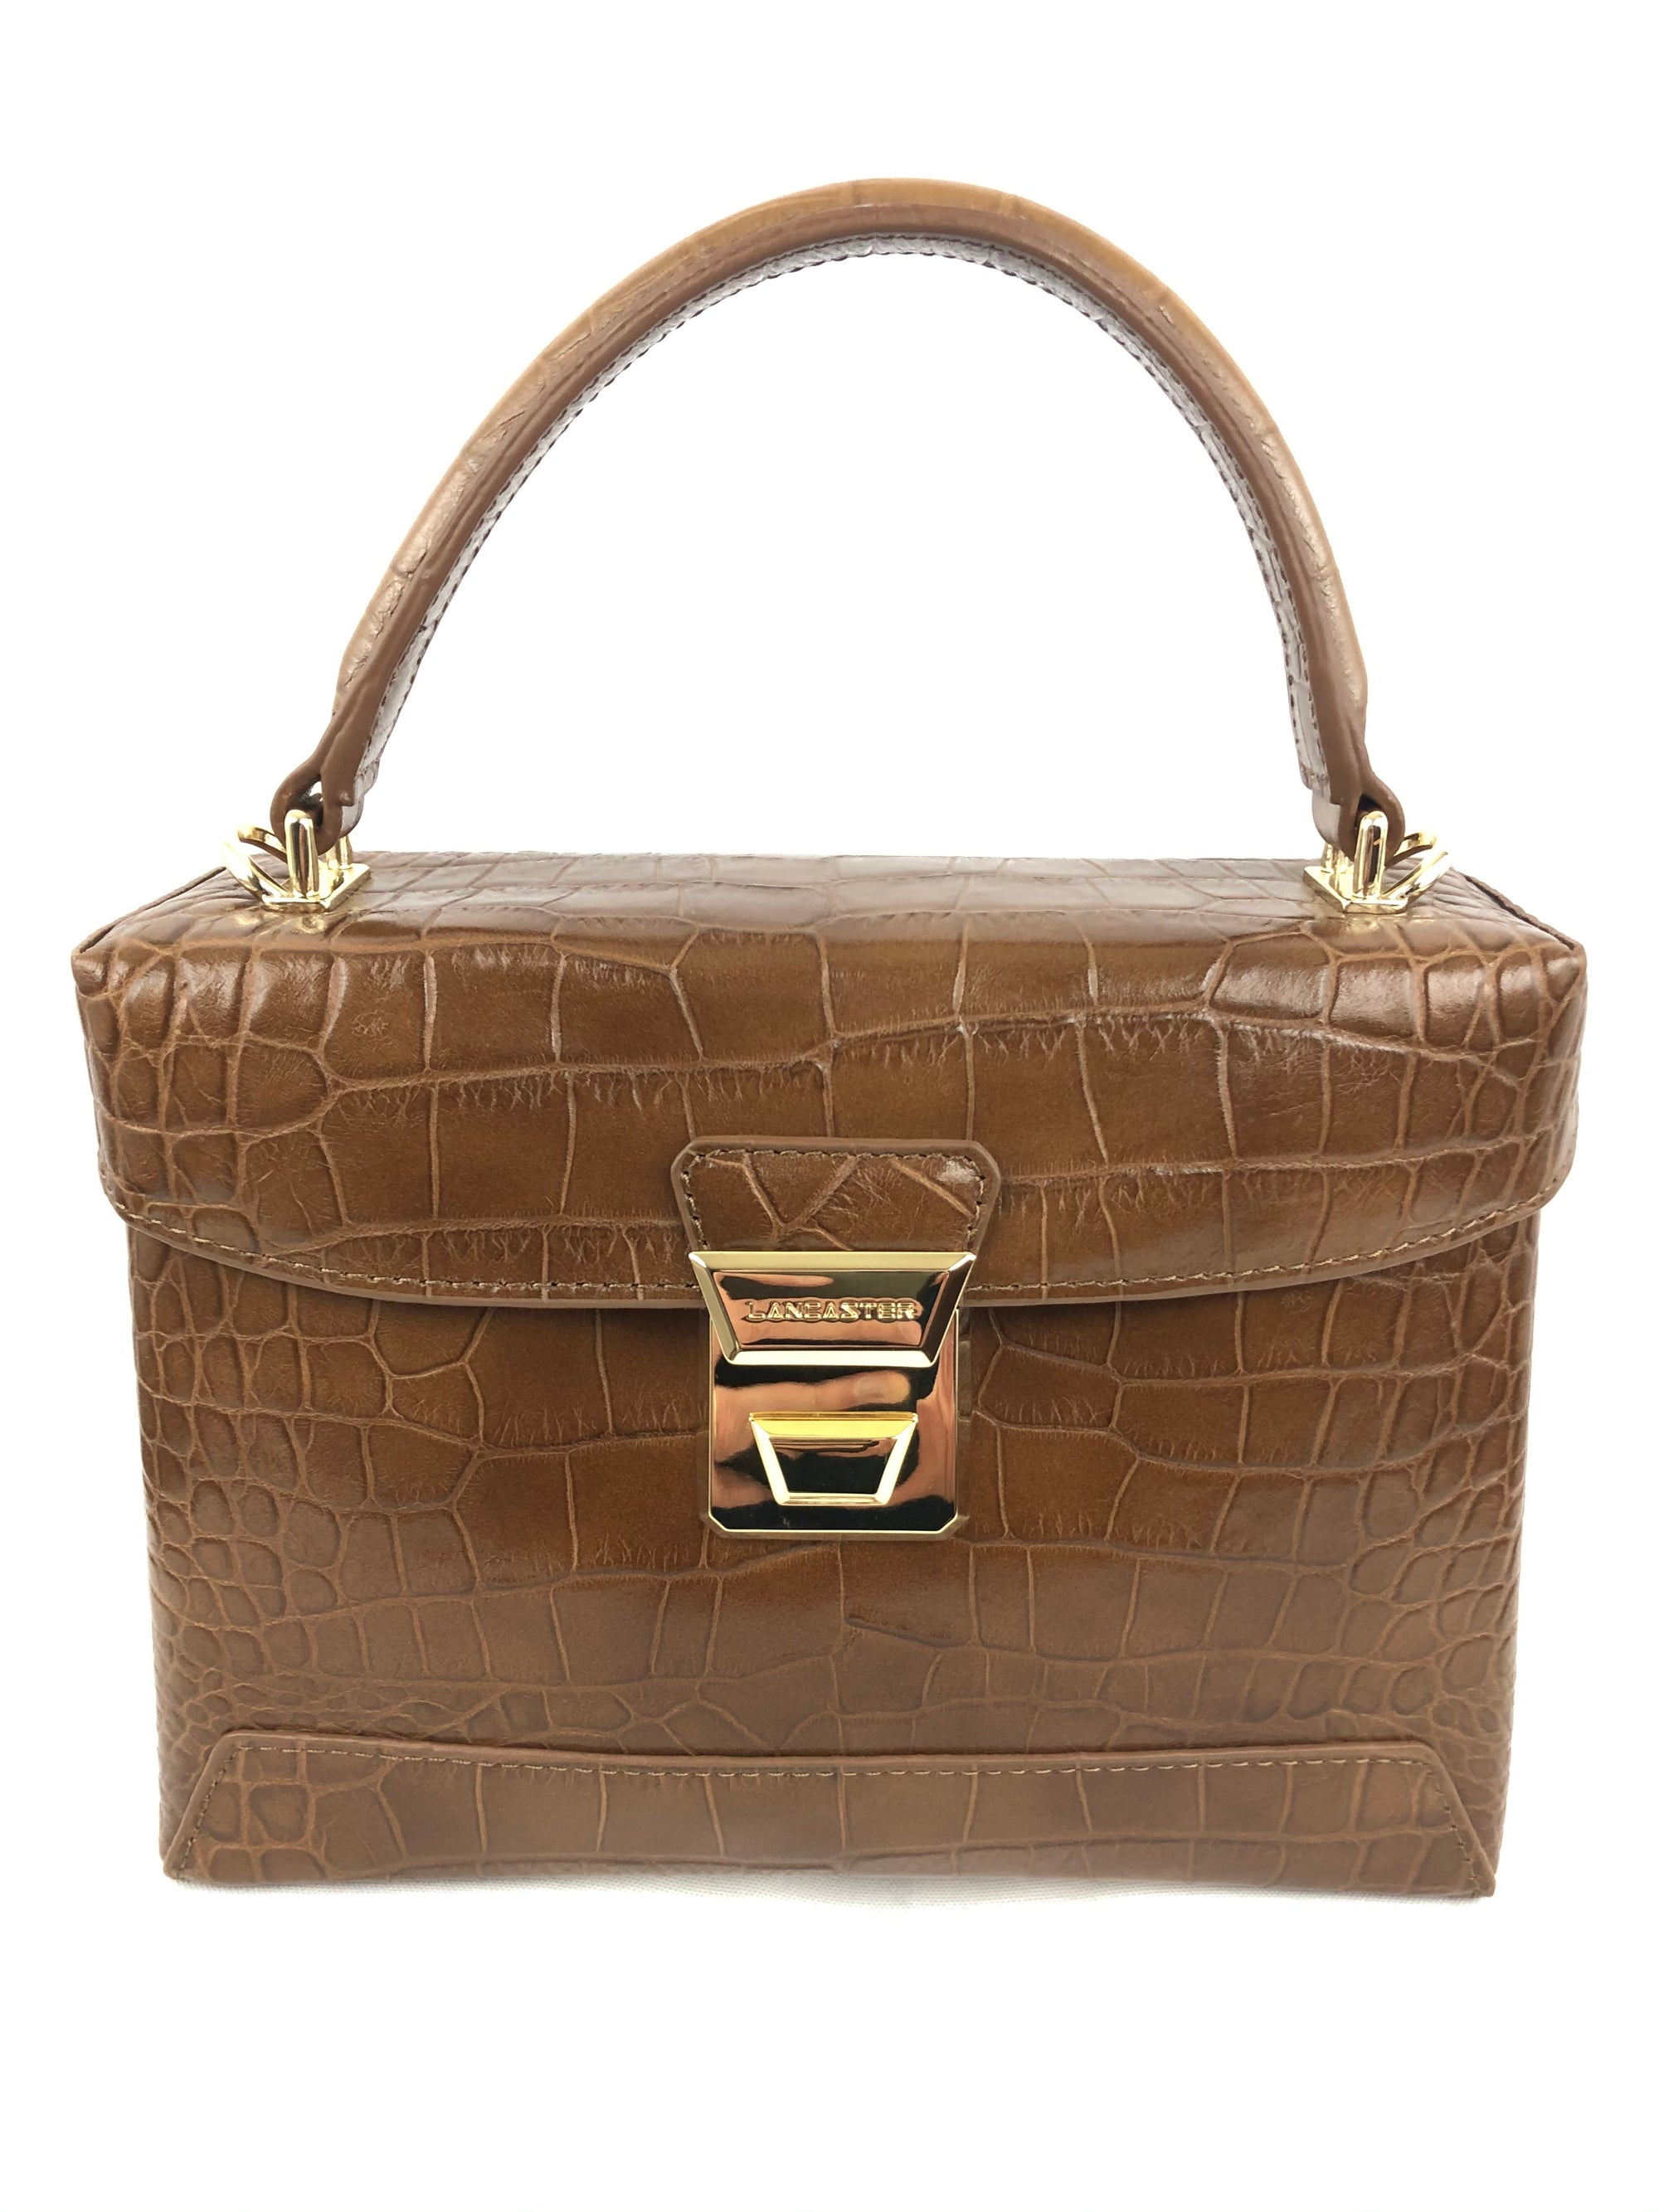 LANCASTER CROCO SHOULDER BAG - 2 COLOR OPTIONS